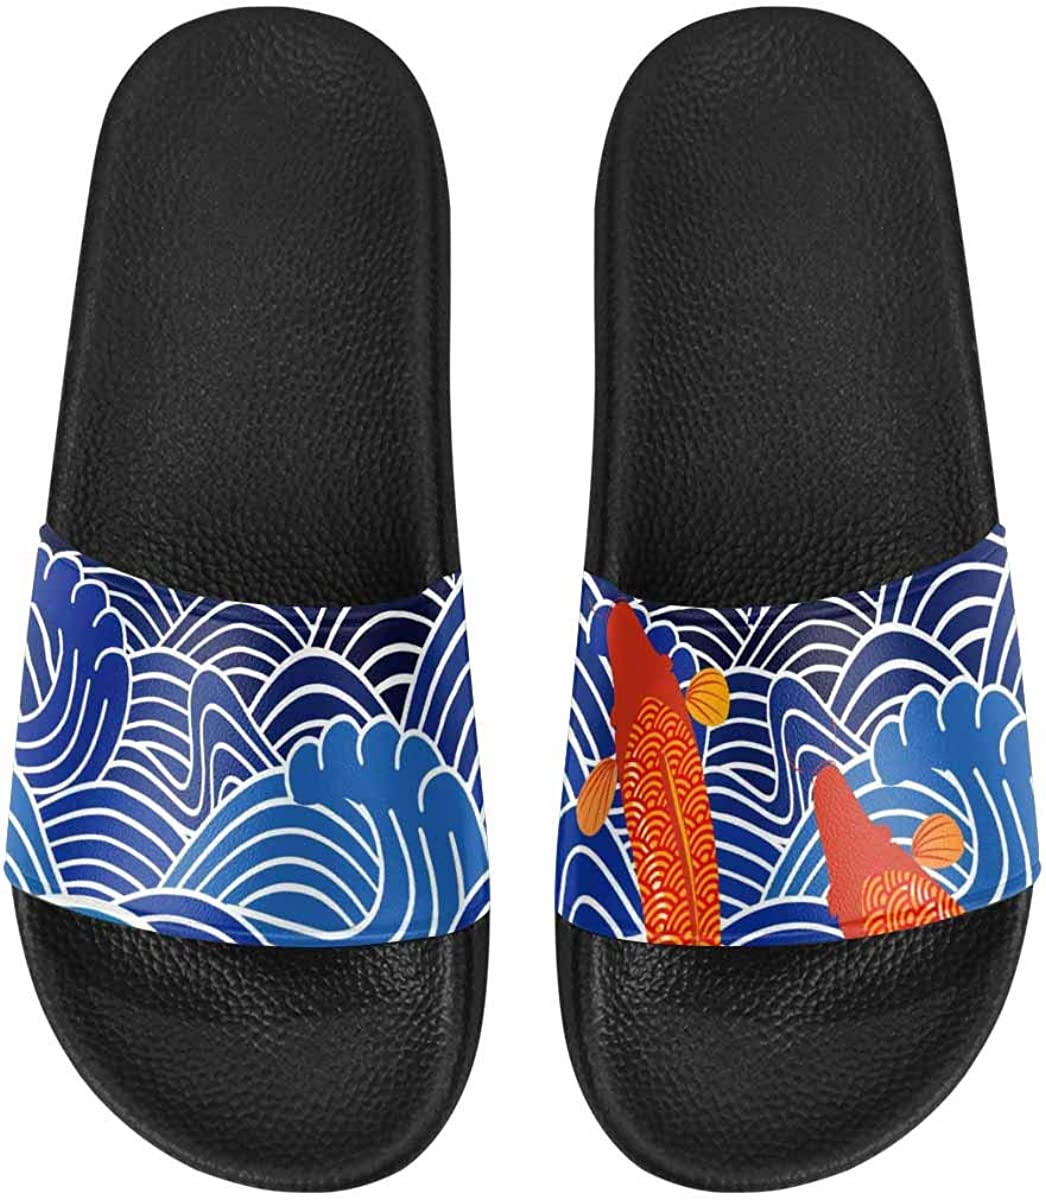 InterestPrint Women's Slide Sandals with PVC Straps and Sole Butterflyon White Background